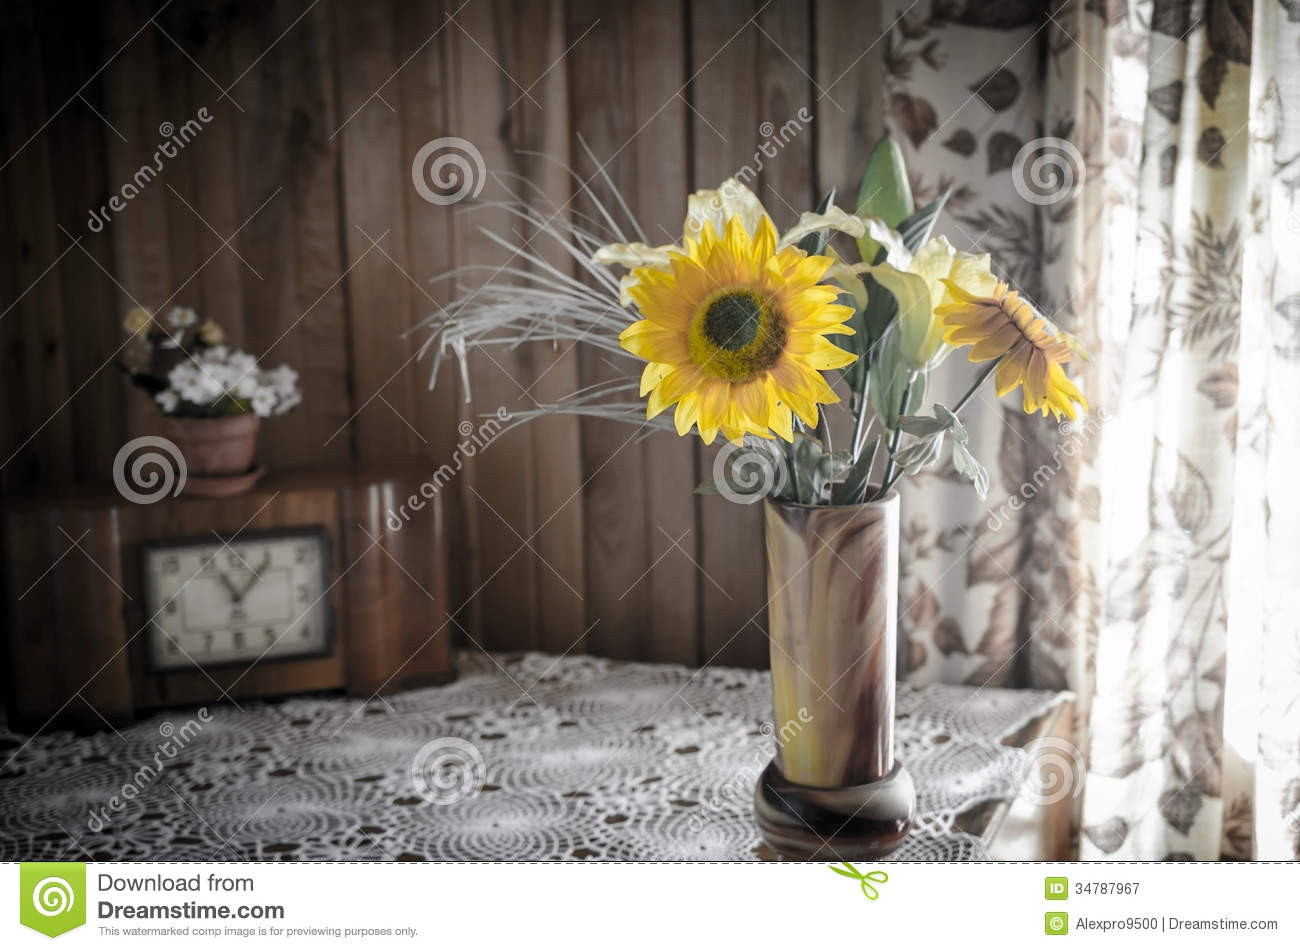 Rustic interior still life stock image. Image of country ...